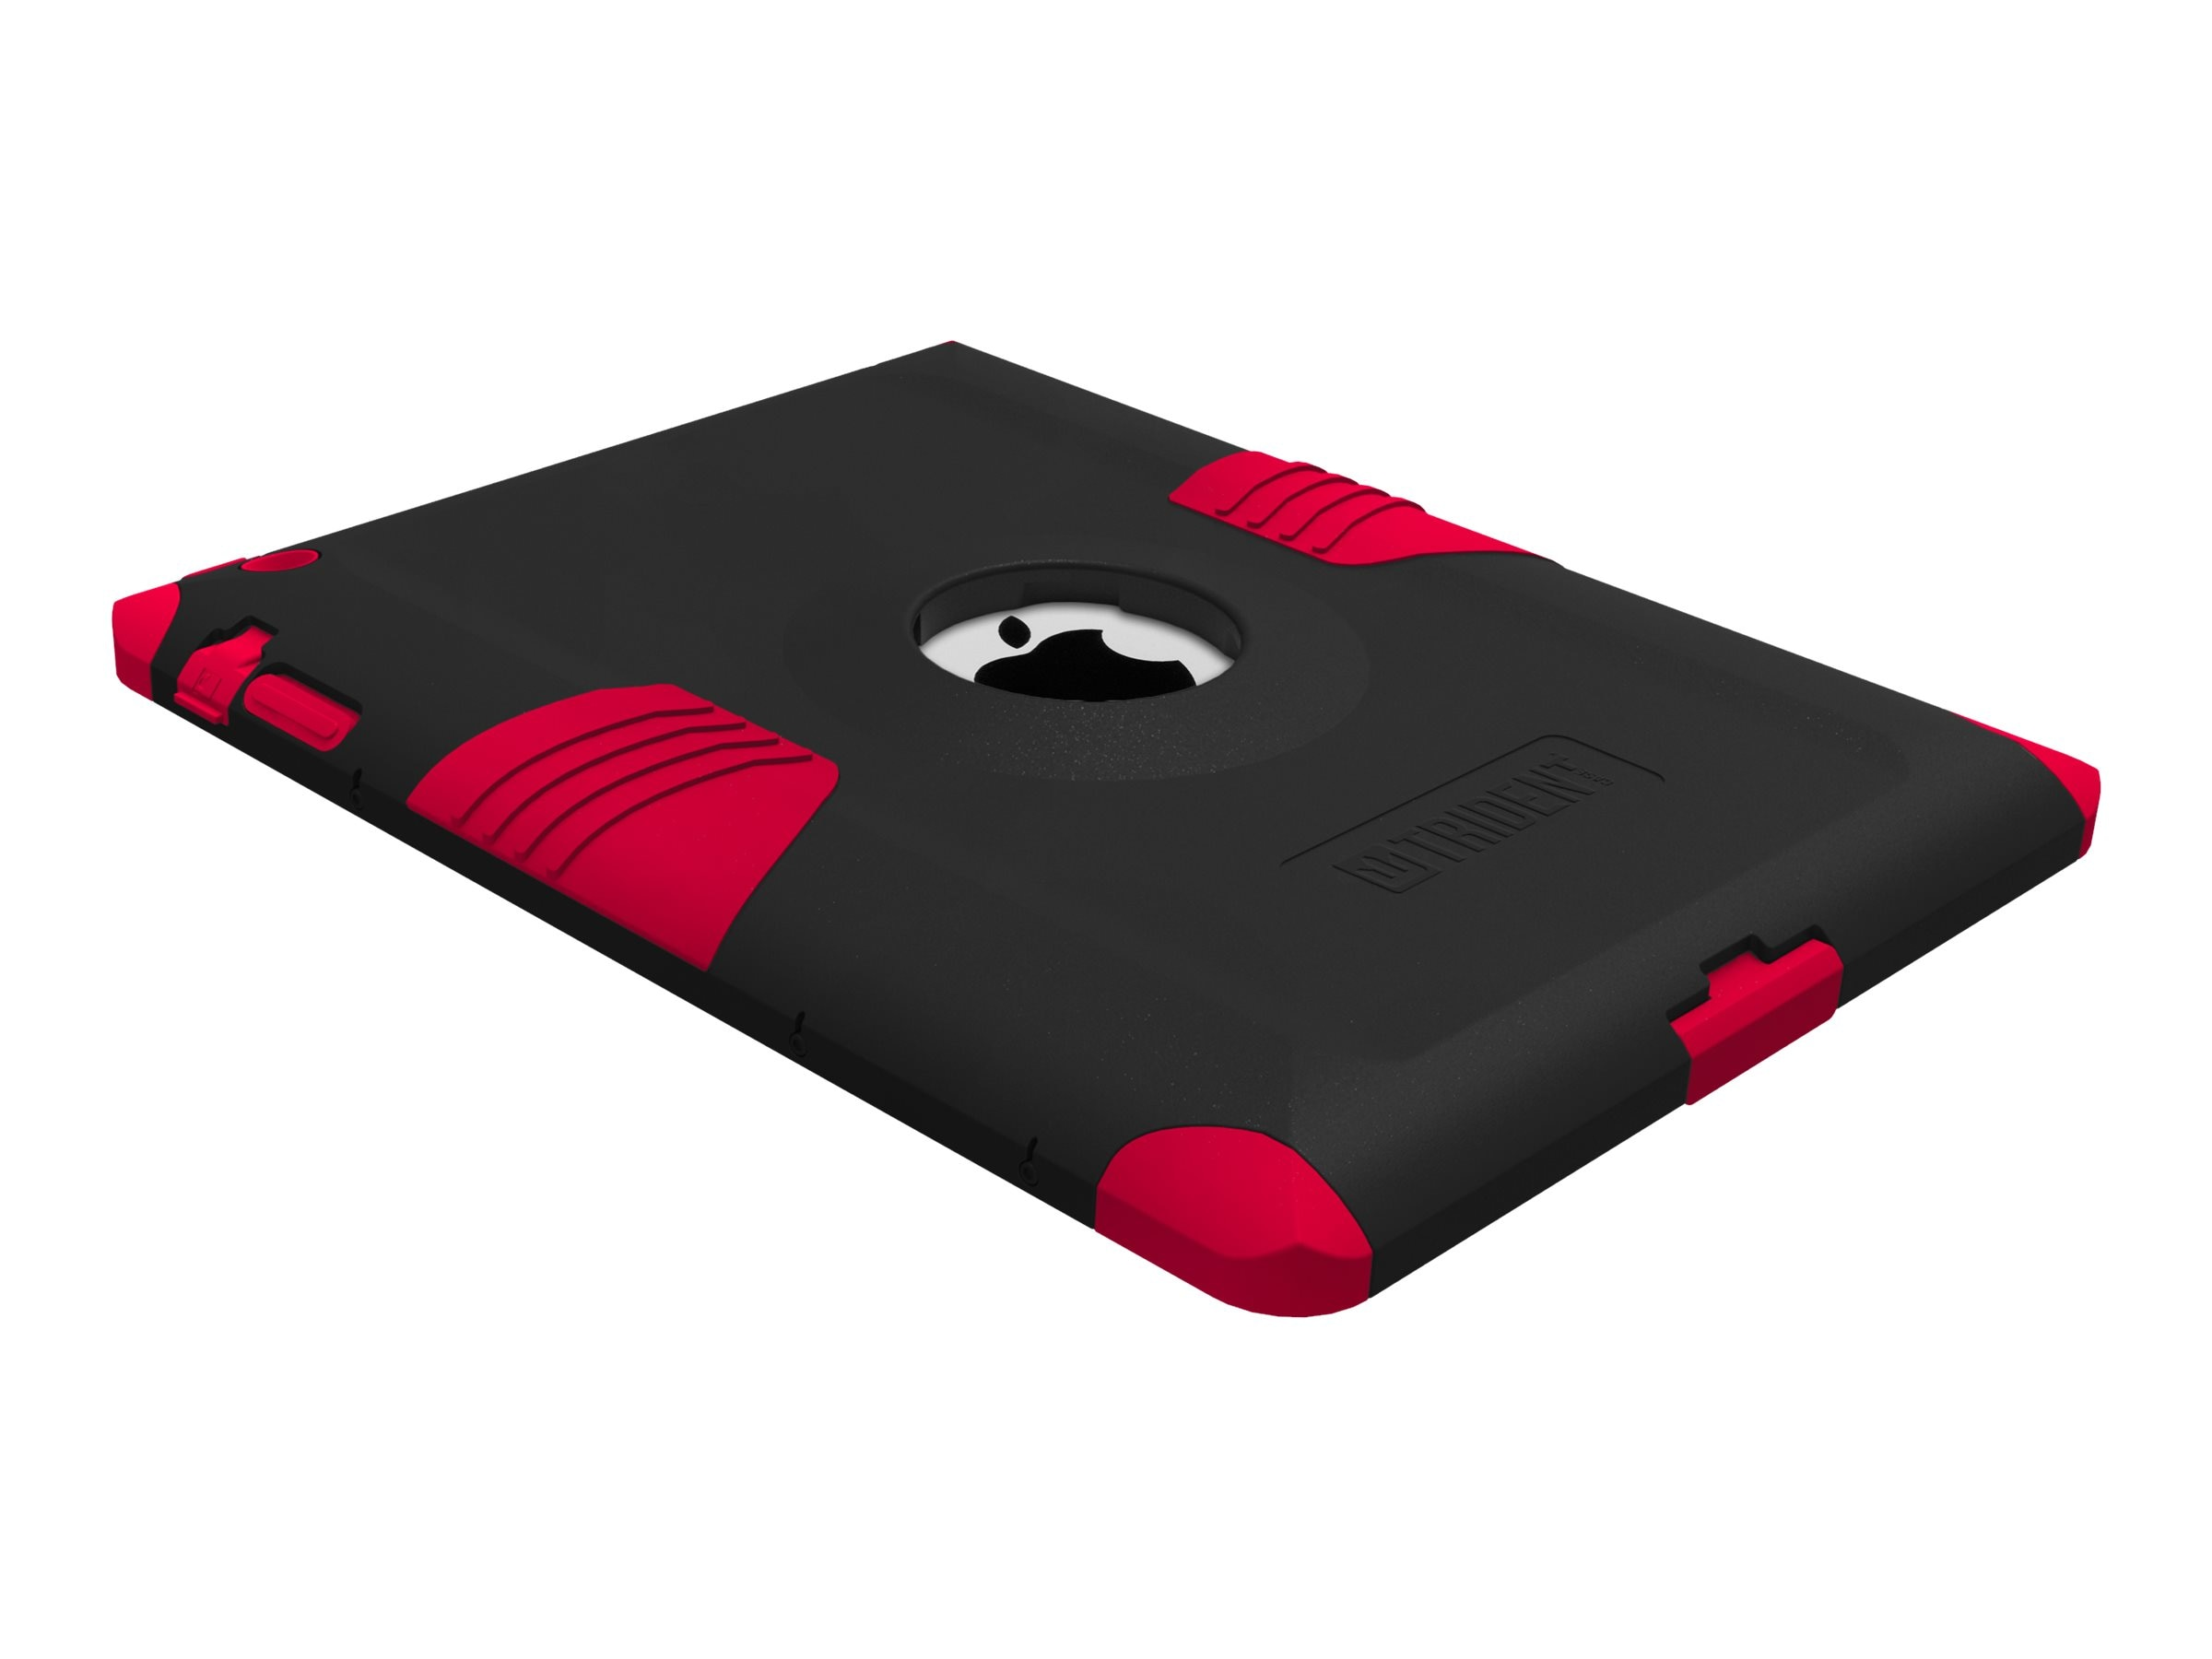 Trident Case AMS-NEW-IPADUS-RED Image 7